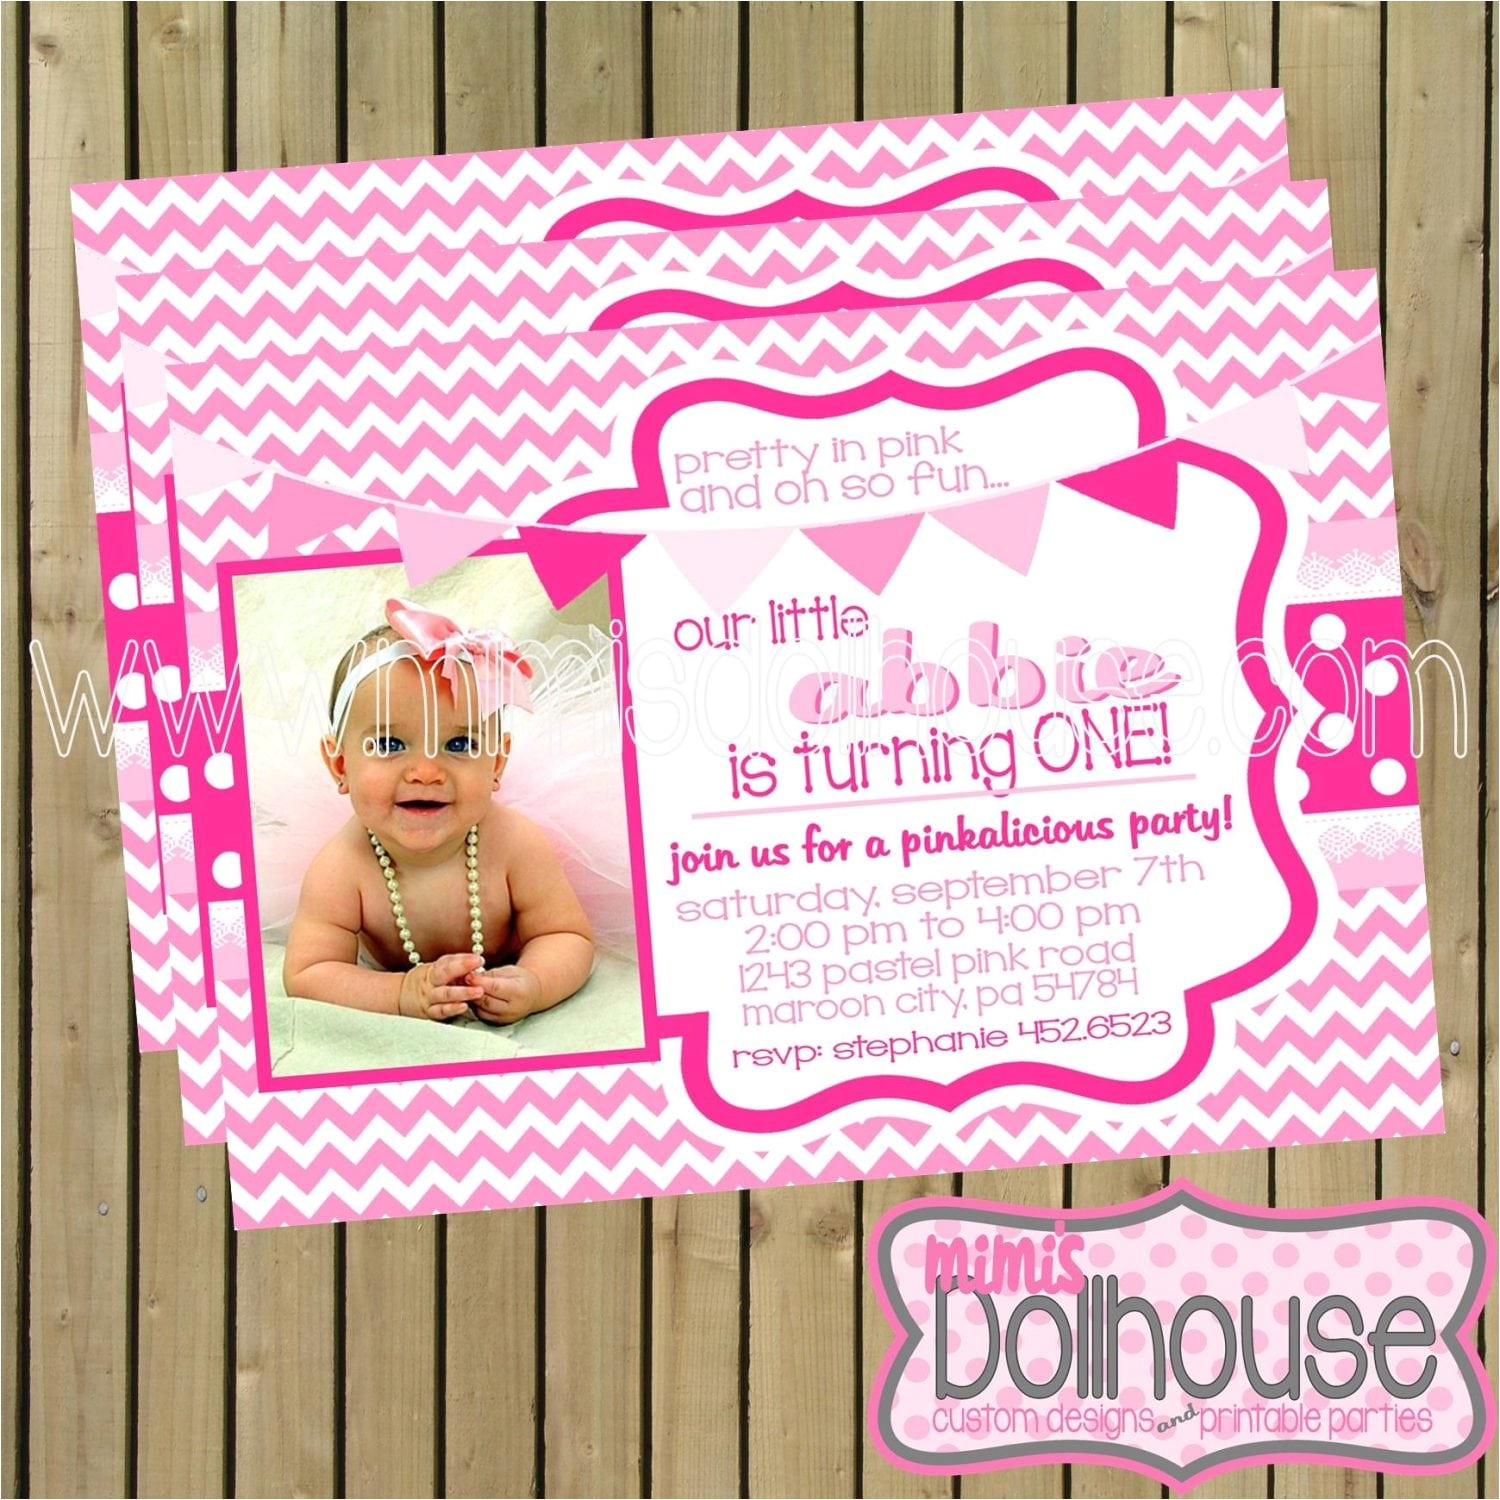 pretty in pink party printable collection